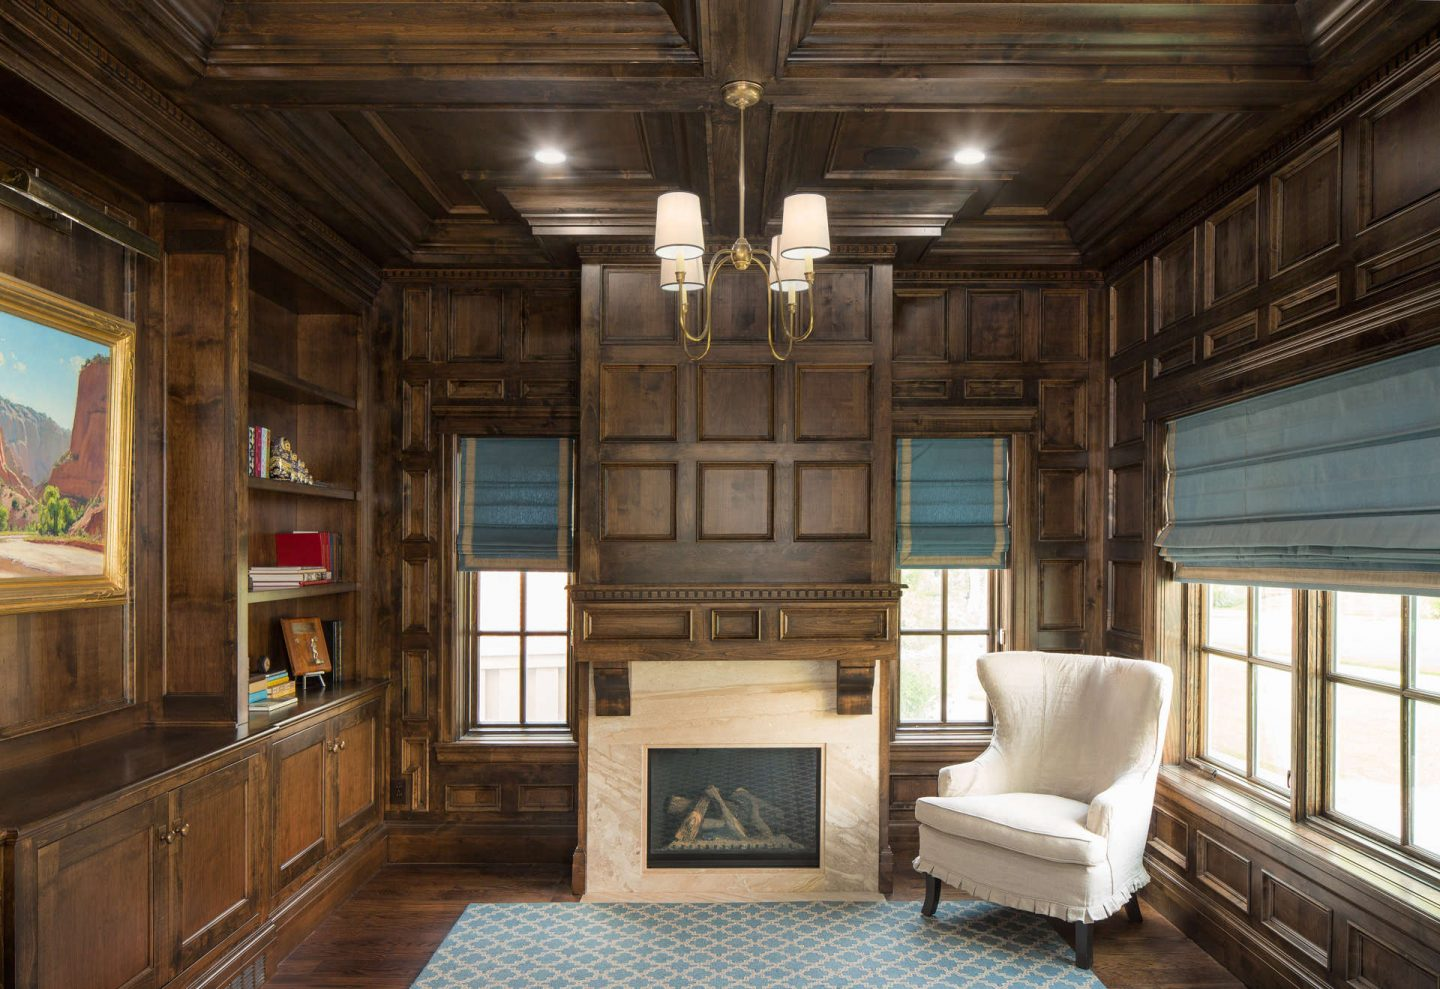 This example of classic traditional architecture from The Fox Group will inspire your design plans! Come see more lovely interior design and home construction ideas. #architecture #interiordesign #traditional #classic #thefoxgroup